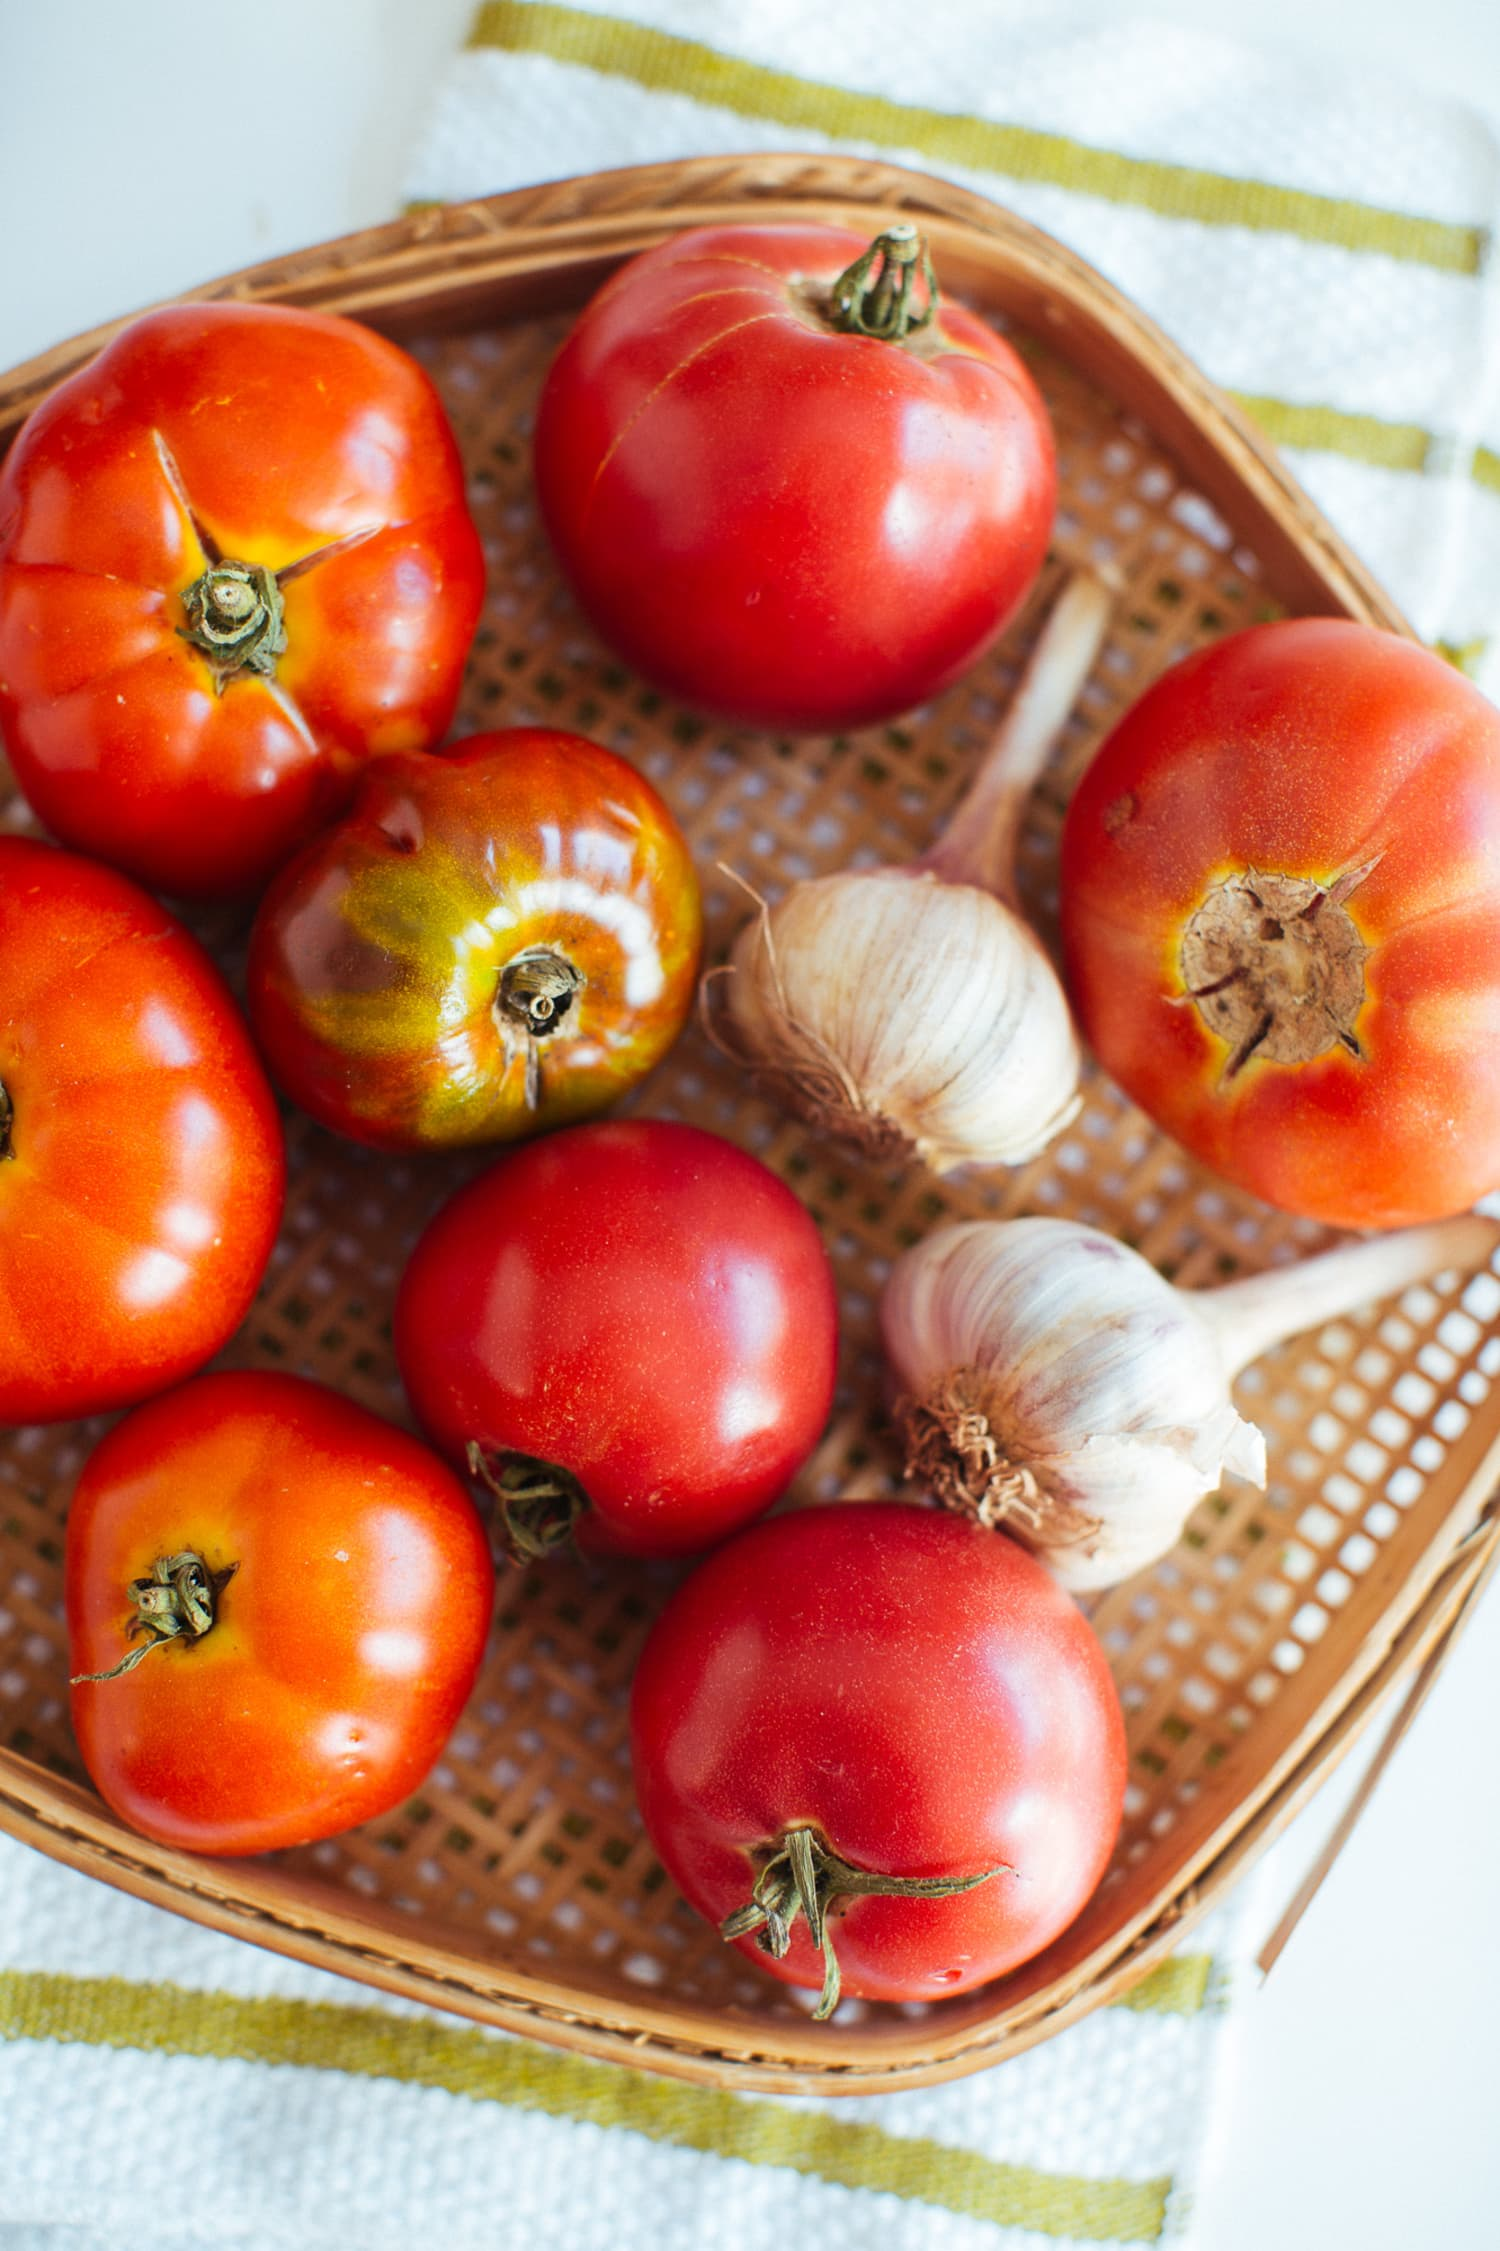 Here Are Dozens of Fresh Tomato Recipes to Make Before Summer Ends